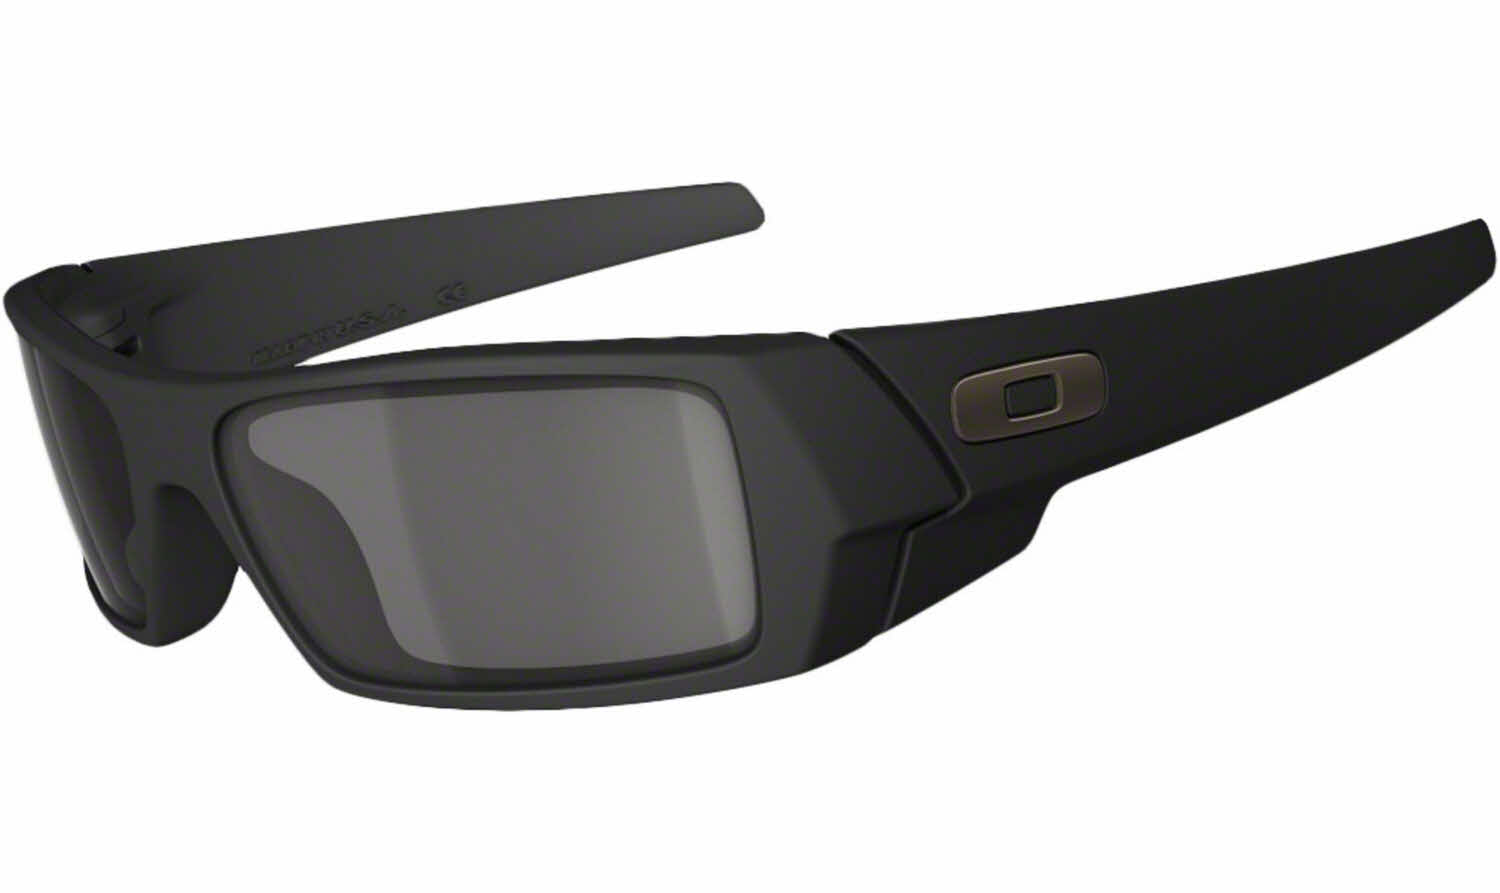 oakley wrap around prescription sunglasses  oakley gascan sunglasses